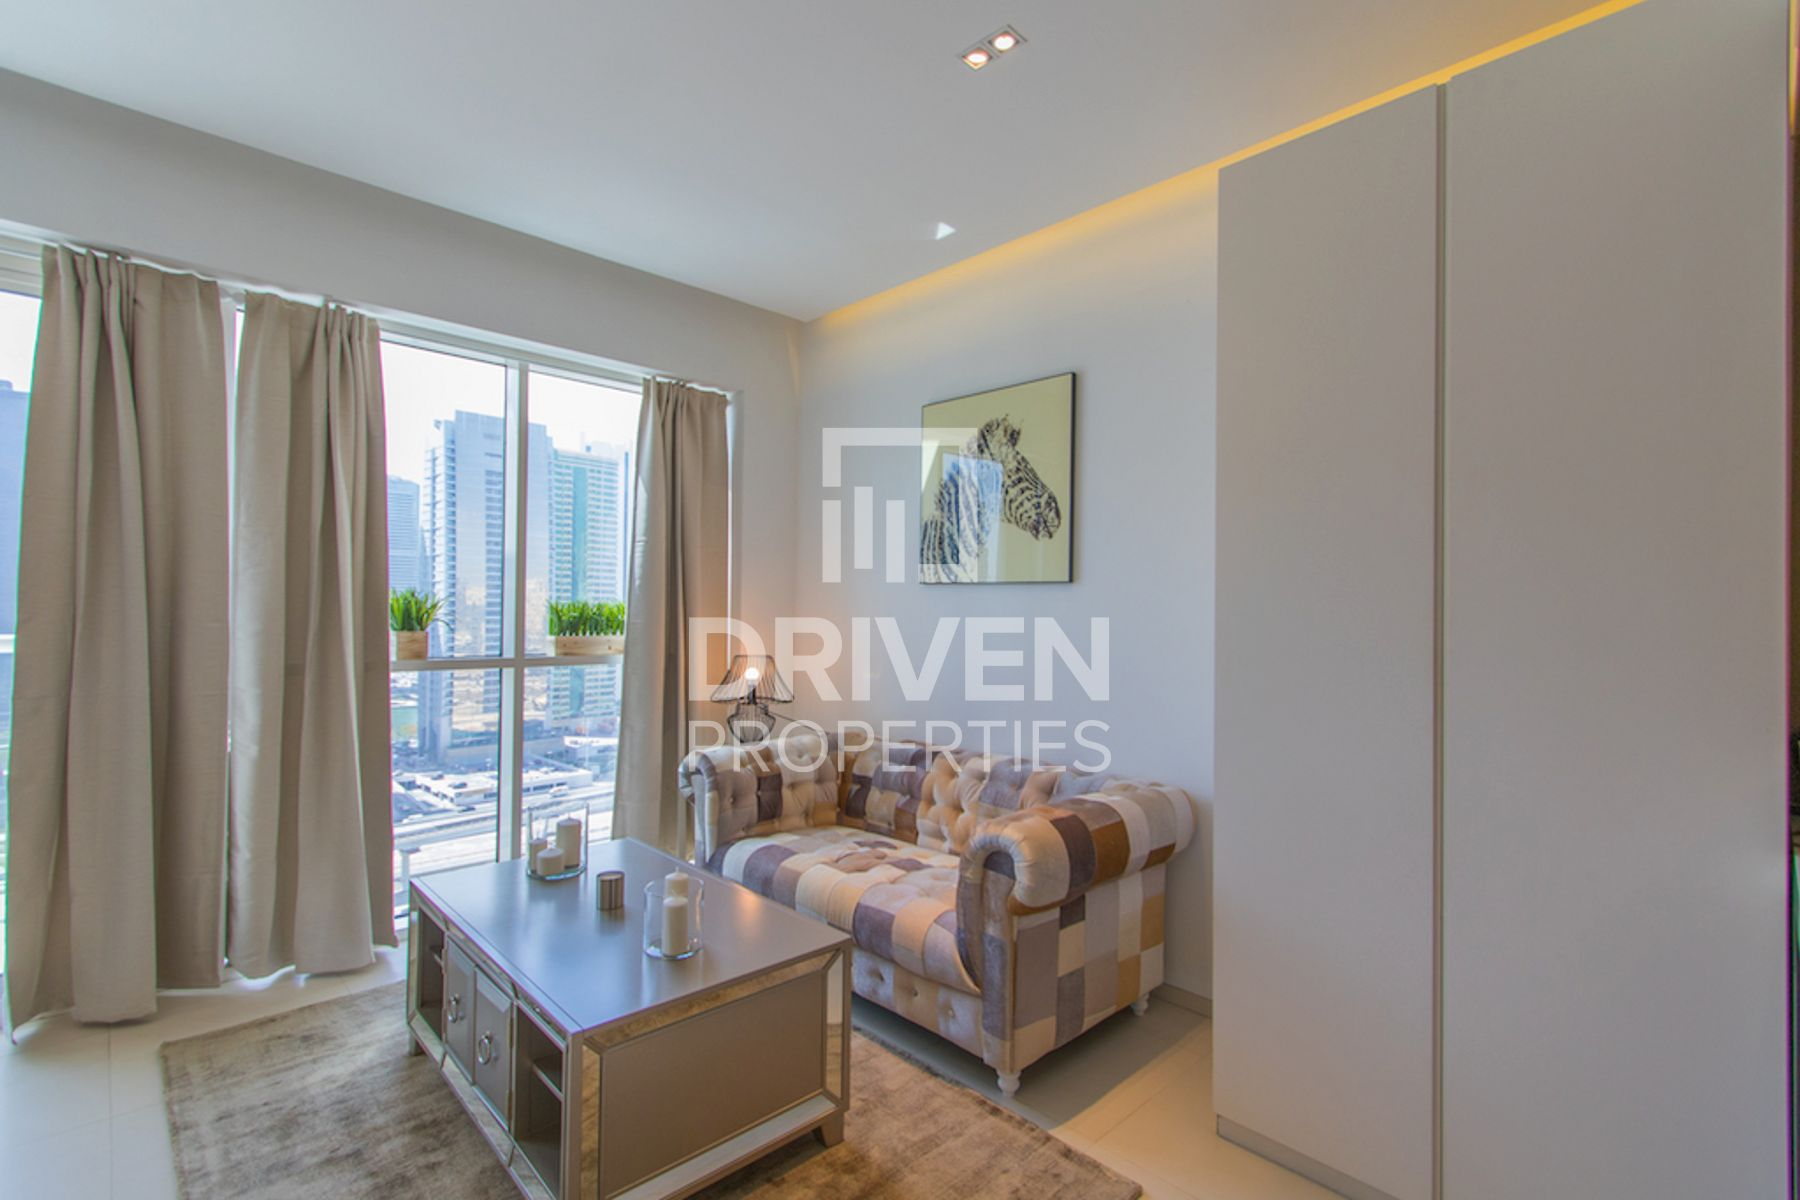 Vacant | Fully furnished | on High Floor